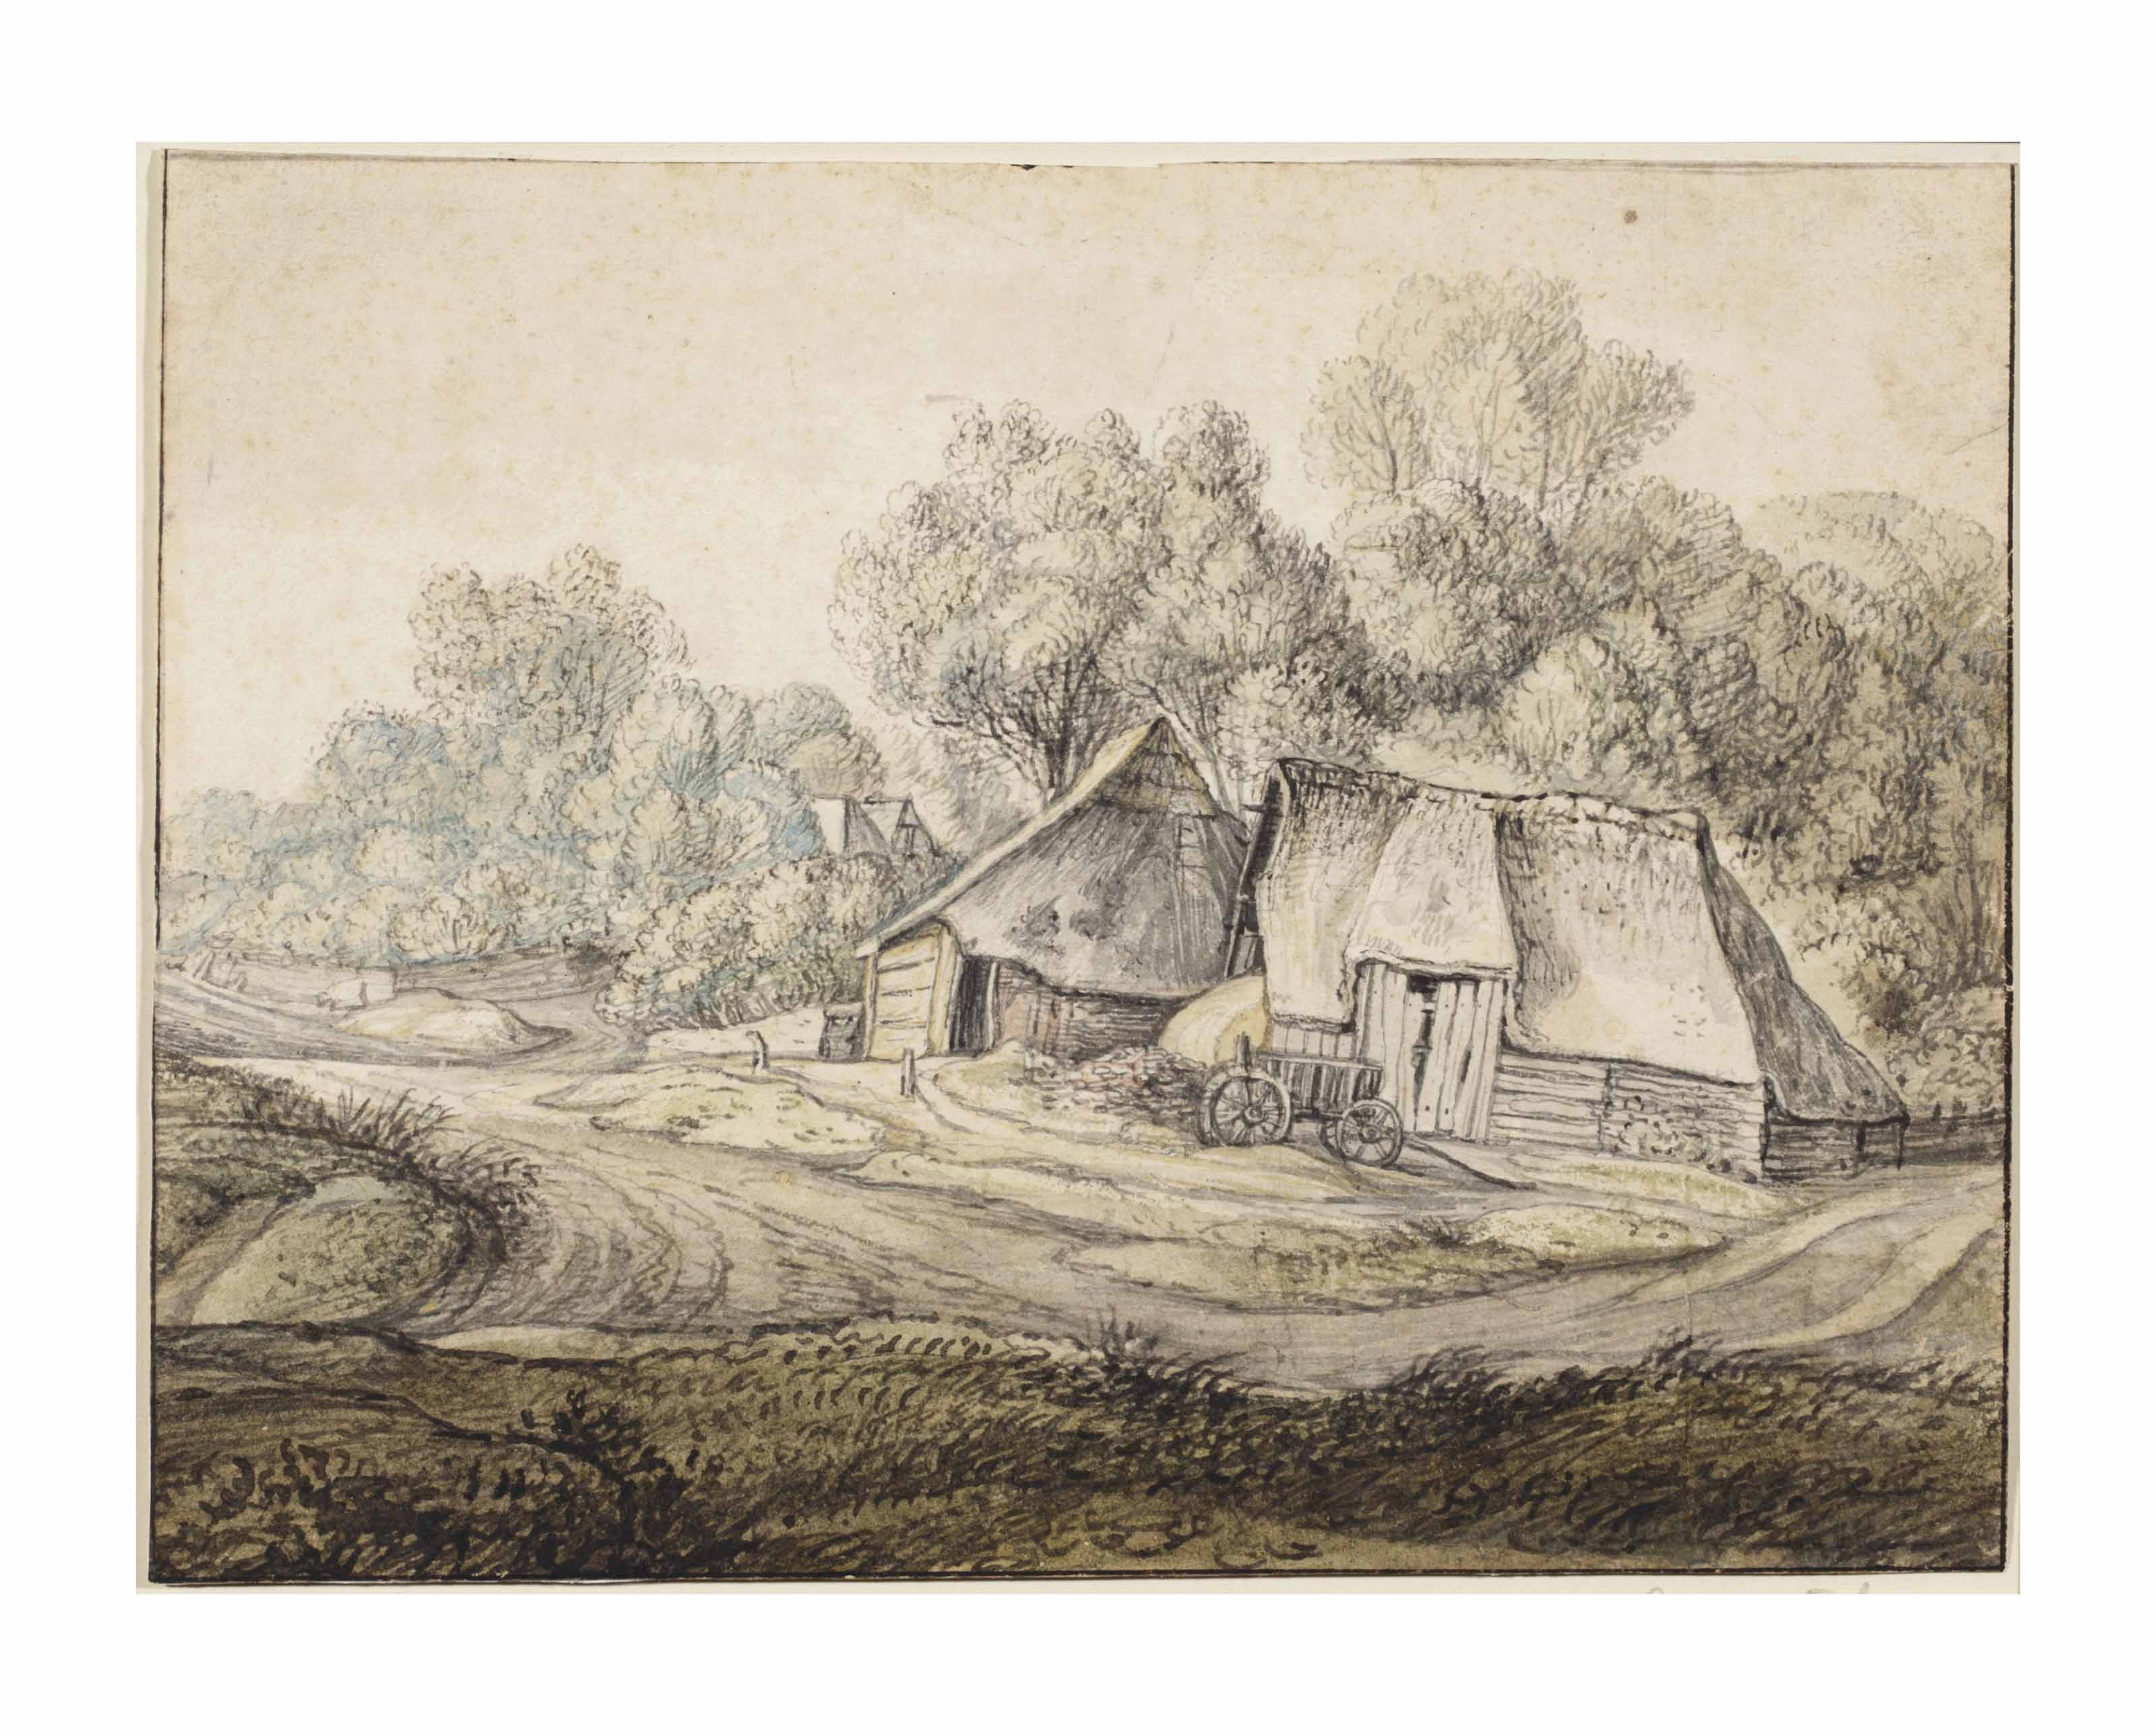 A wooded landscape with farms, by a road